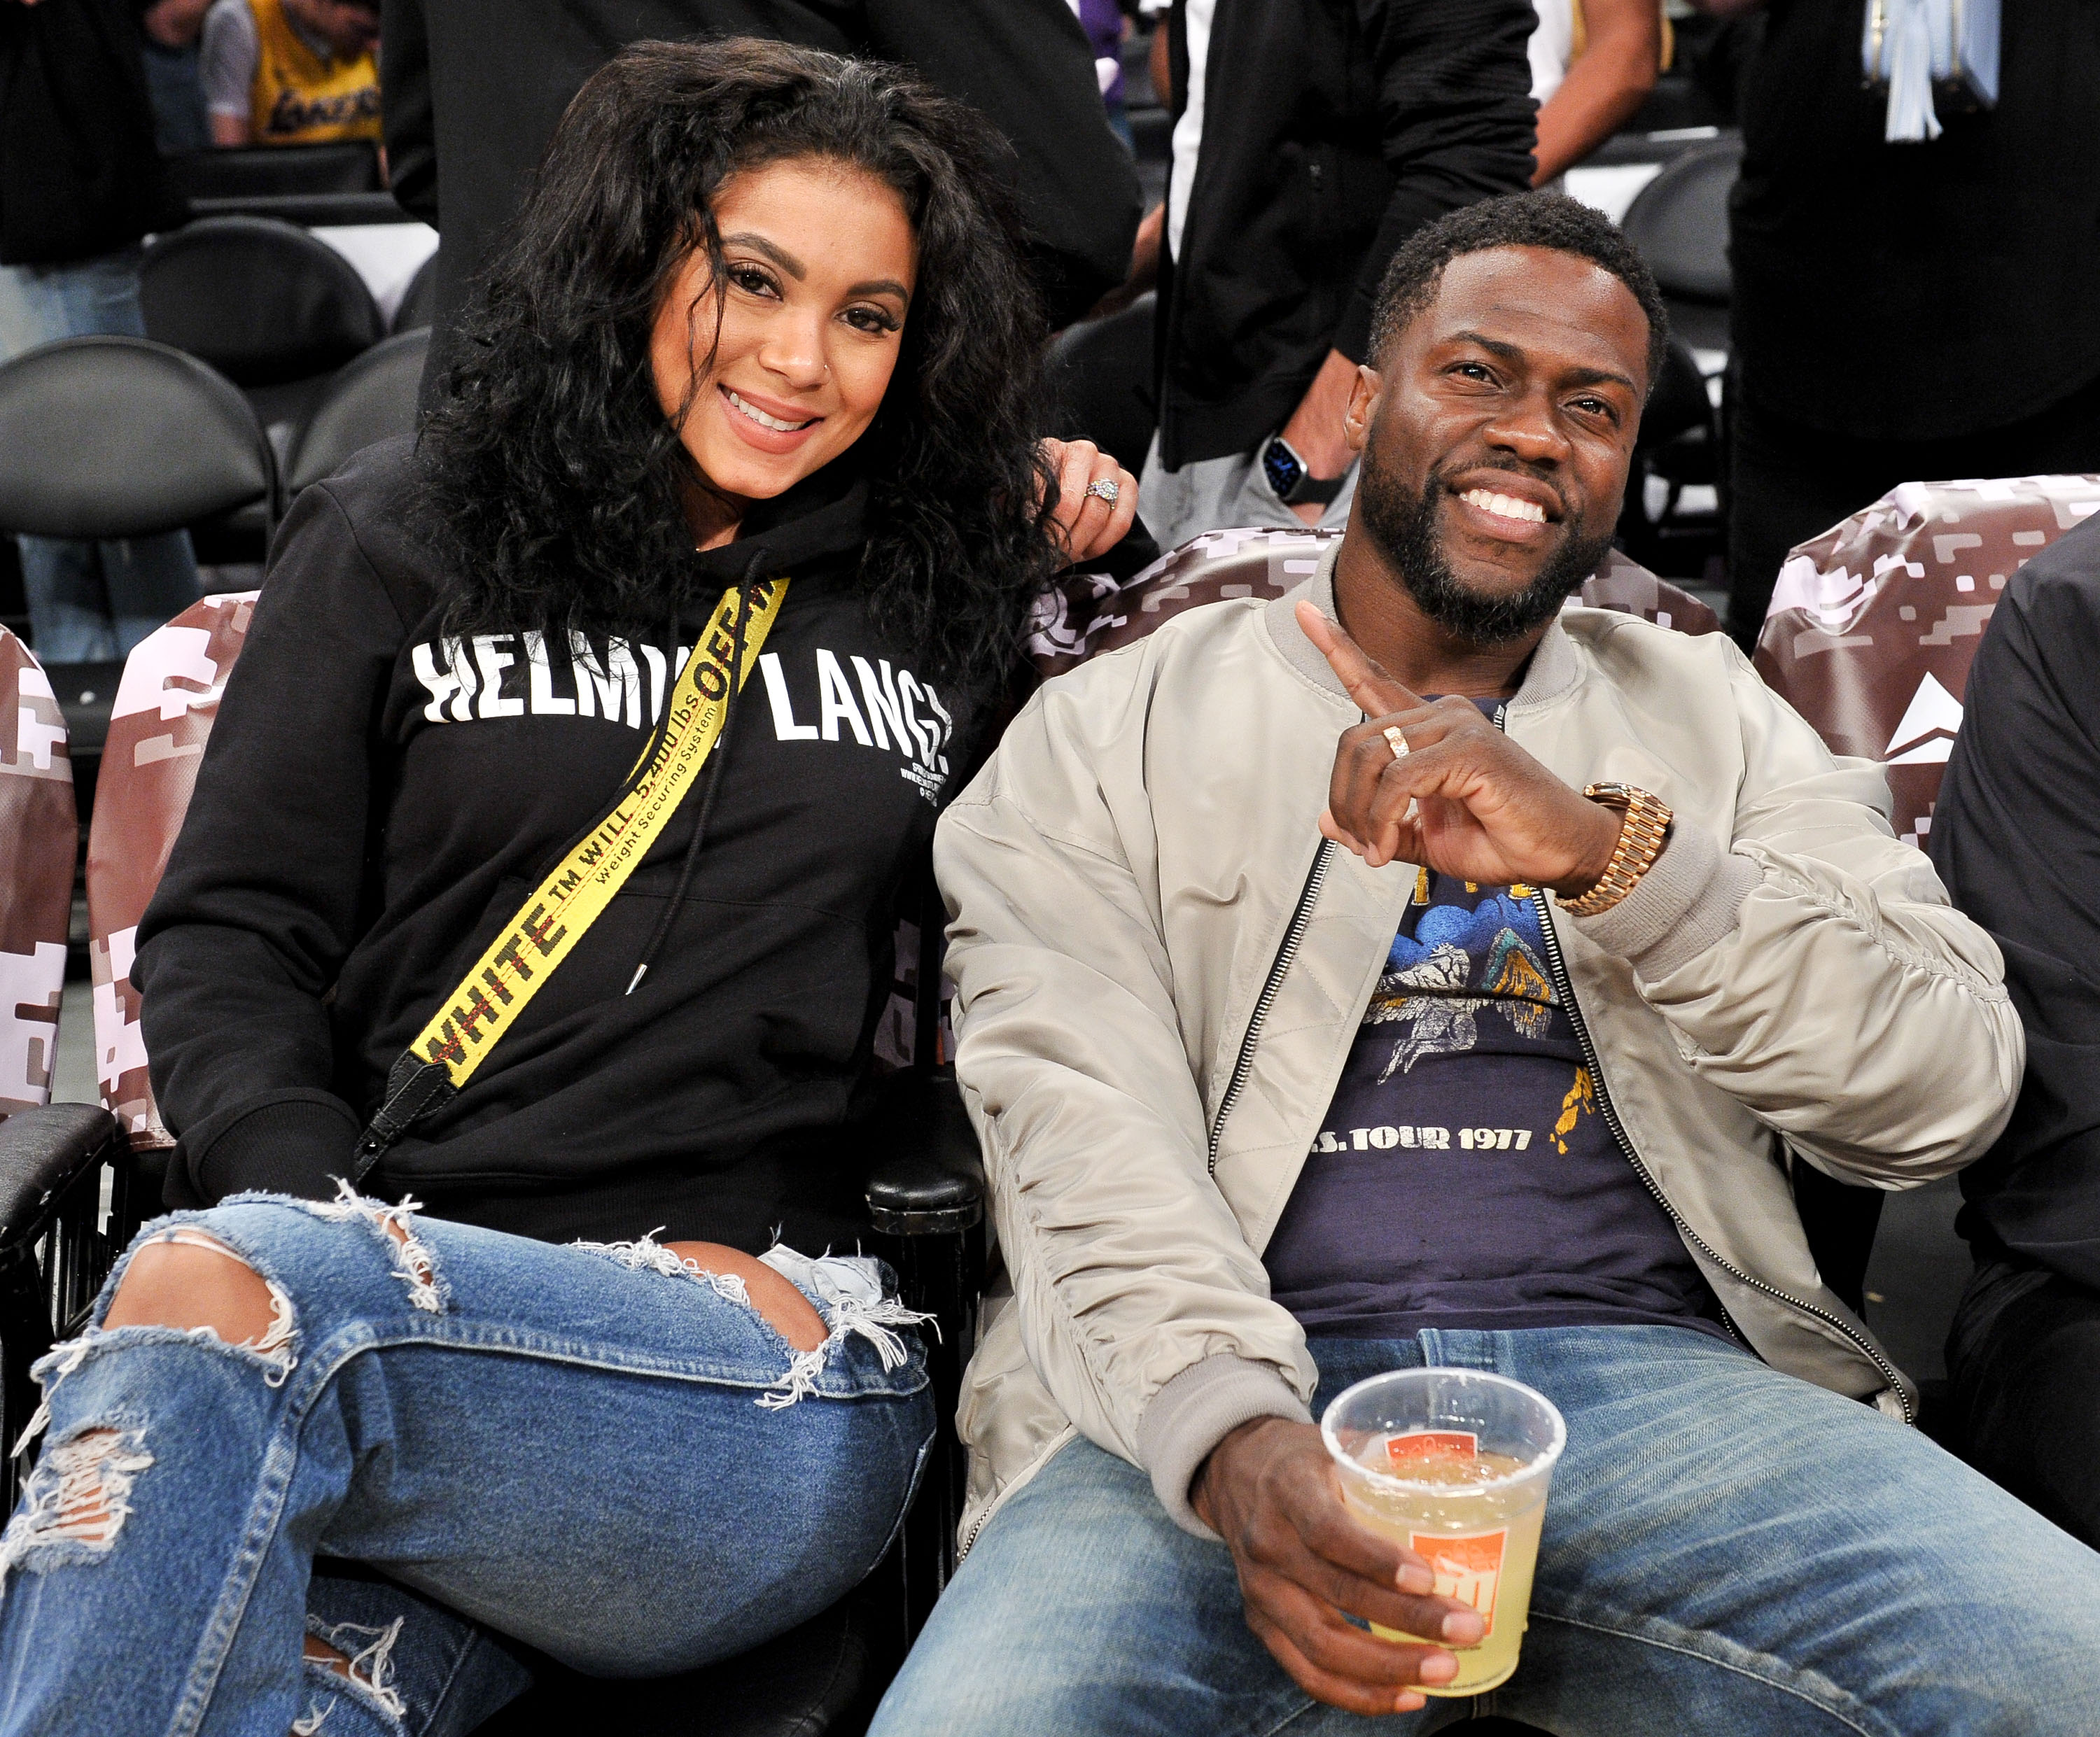 Kevin Hart and Eniko Parrish attend a basketball game at Staples Center on November 17, 2019 in Los Angeles, California. | Source: Getty Images